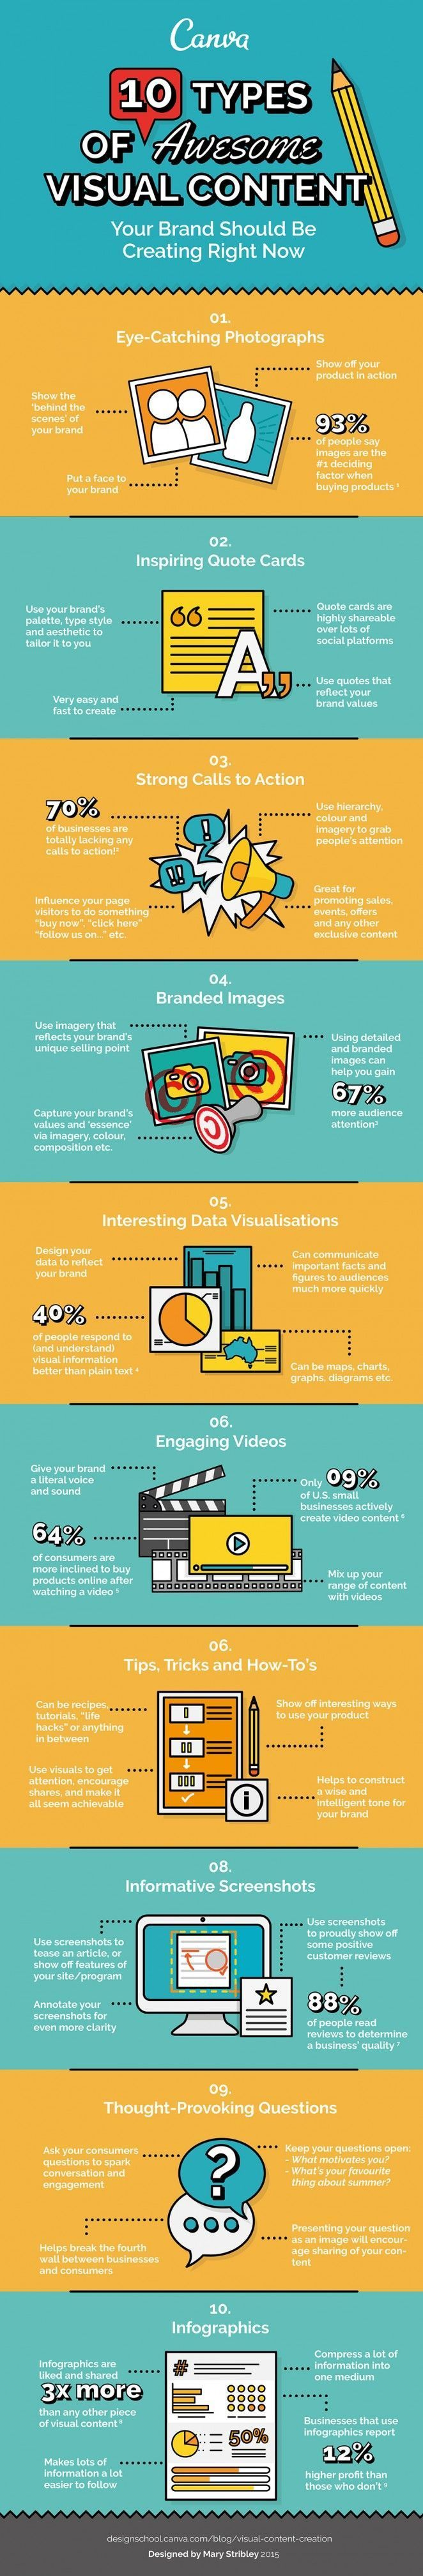 Awesome graphic on 10 types of visual content from @Canva